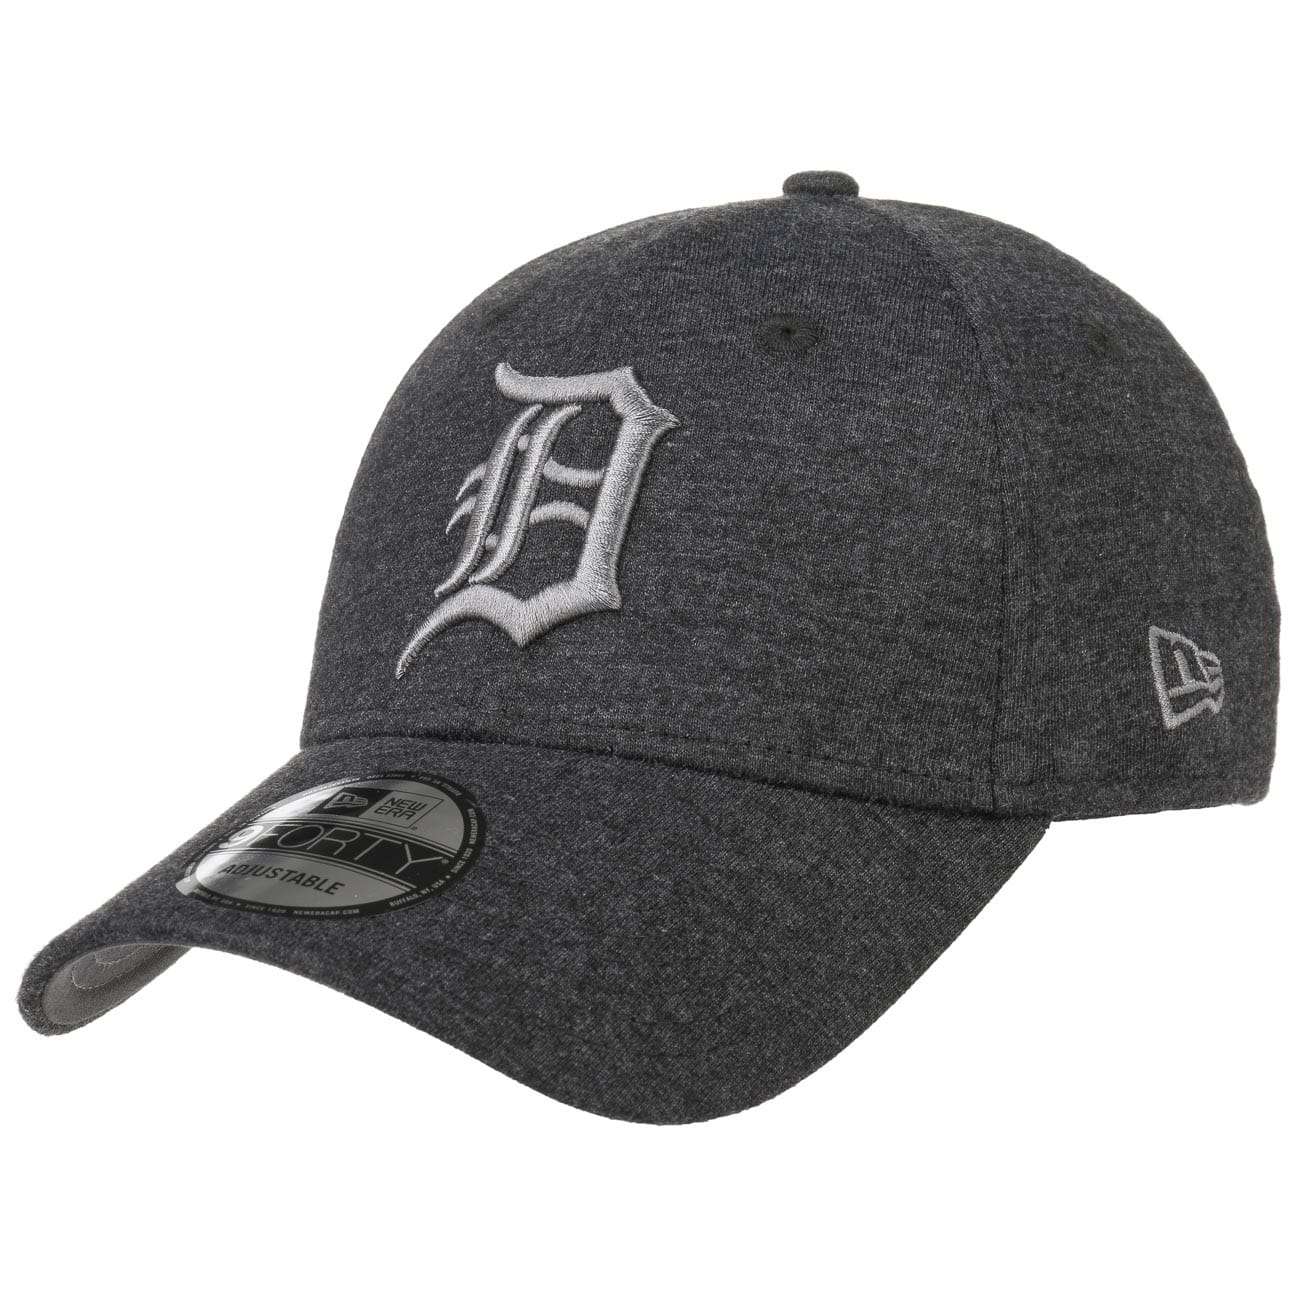 9forty-jersey-tigers-cap-by-new-era-basecap